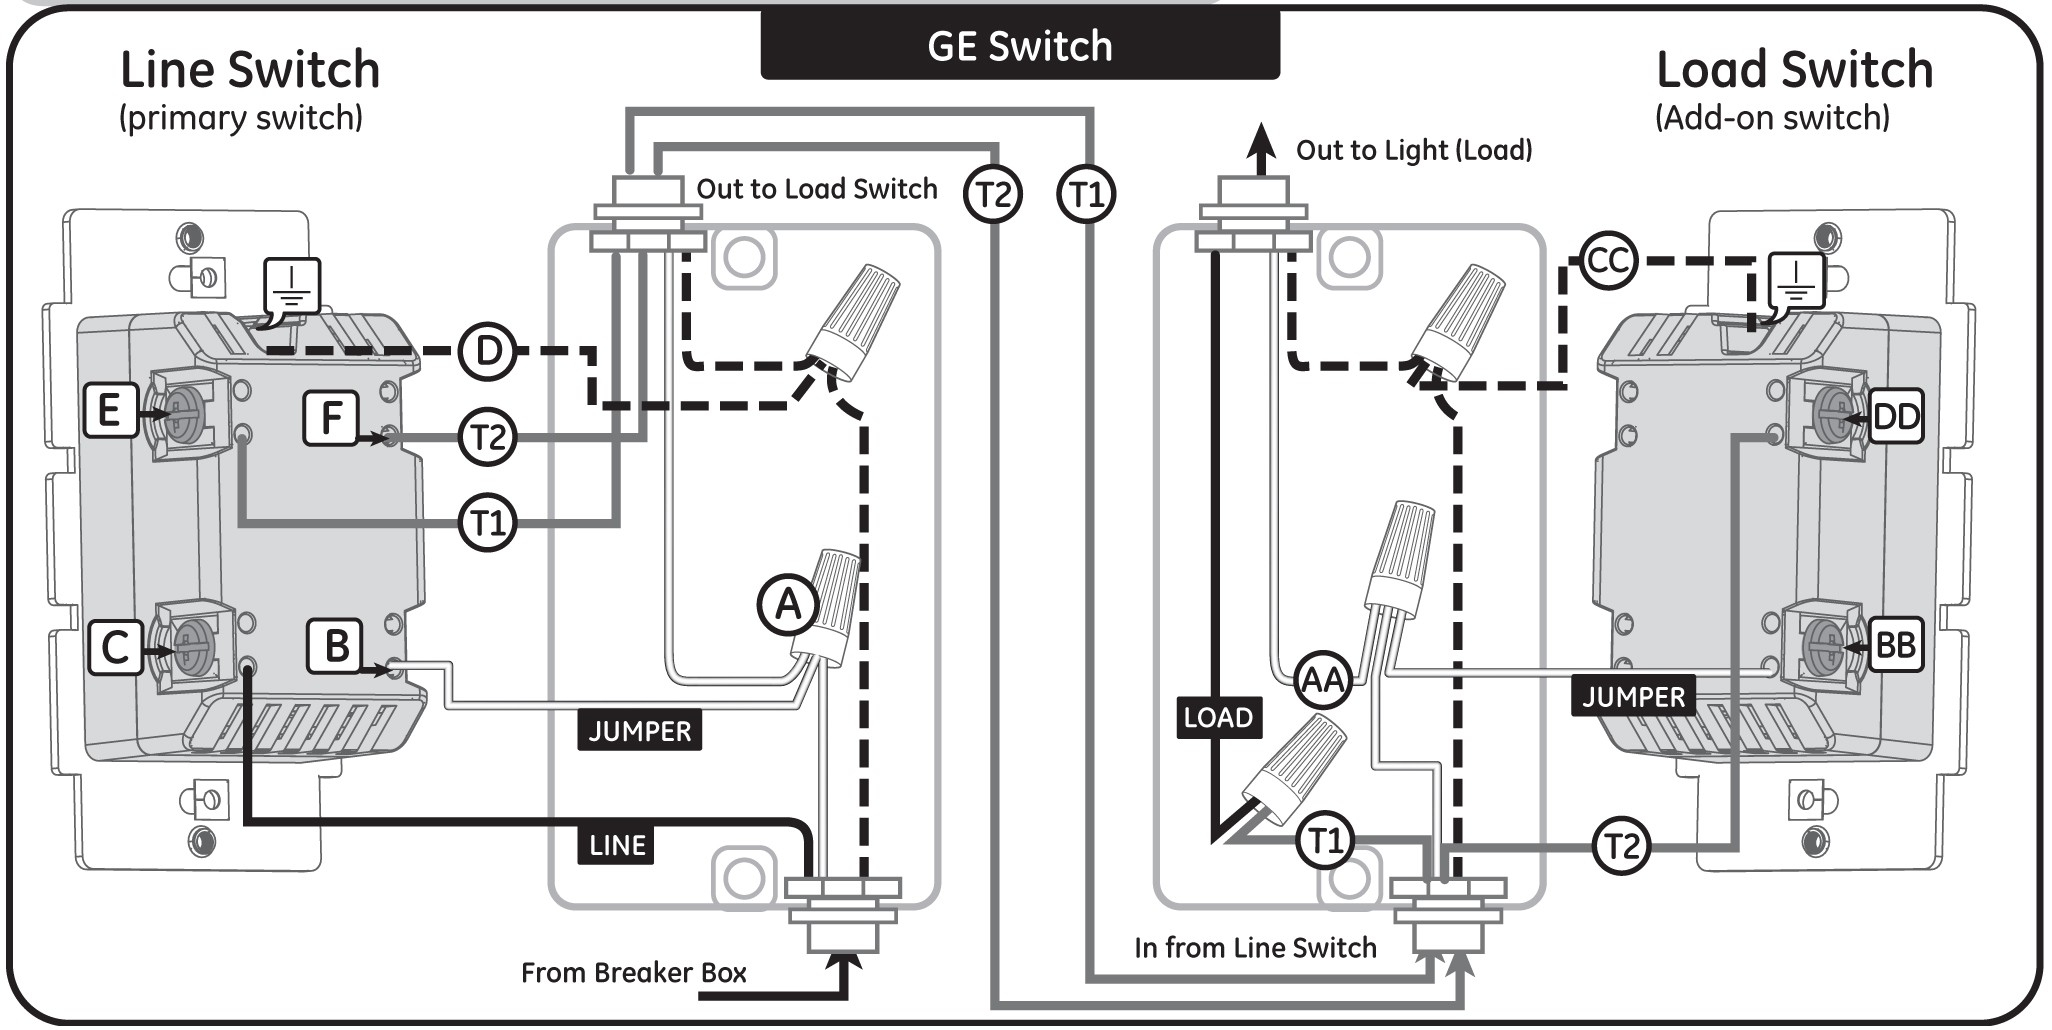 Z Wave Micro Switch Wiring Diagram | Wiring Diagram Liries  Way Switch Wiring Diagram Micro on 3 way light switch, three switches one light diagram, volume control wiring diagram, 3 way switch cover, 3 way switch schematic, four way switch diagram, easy 3 way switch diagram, 3 way switch getting hot, 3 way switch installation, two way switch diagram, 3 way switch wire, gfci wiring diagram, 3 way switch troubleshooting, 3 way switch lighting, 3 way switch help, 3 way switch with dimmer, circuit breaker wiring diagram, three way switch diagram, 3 wire switch diagram, 3 way switch electrical,